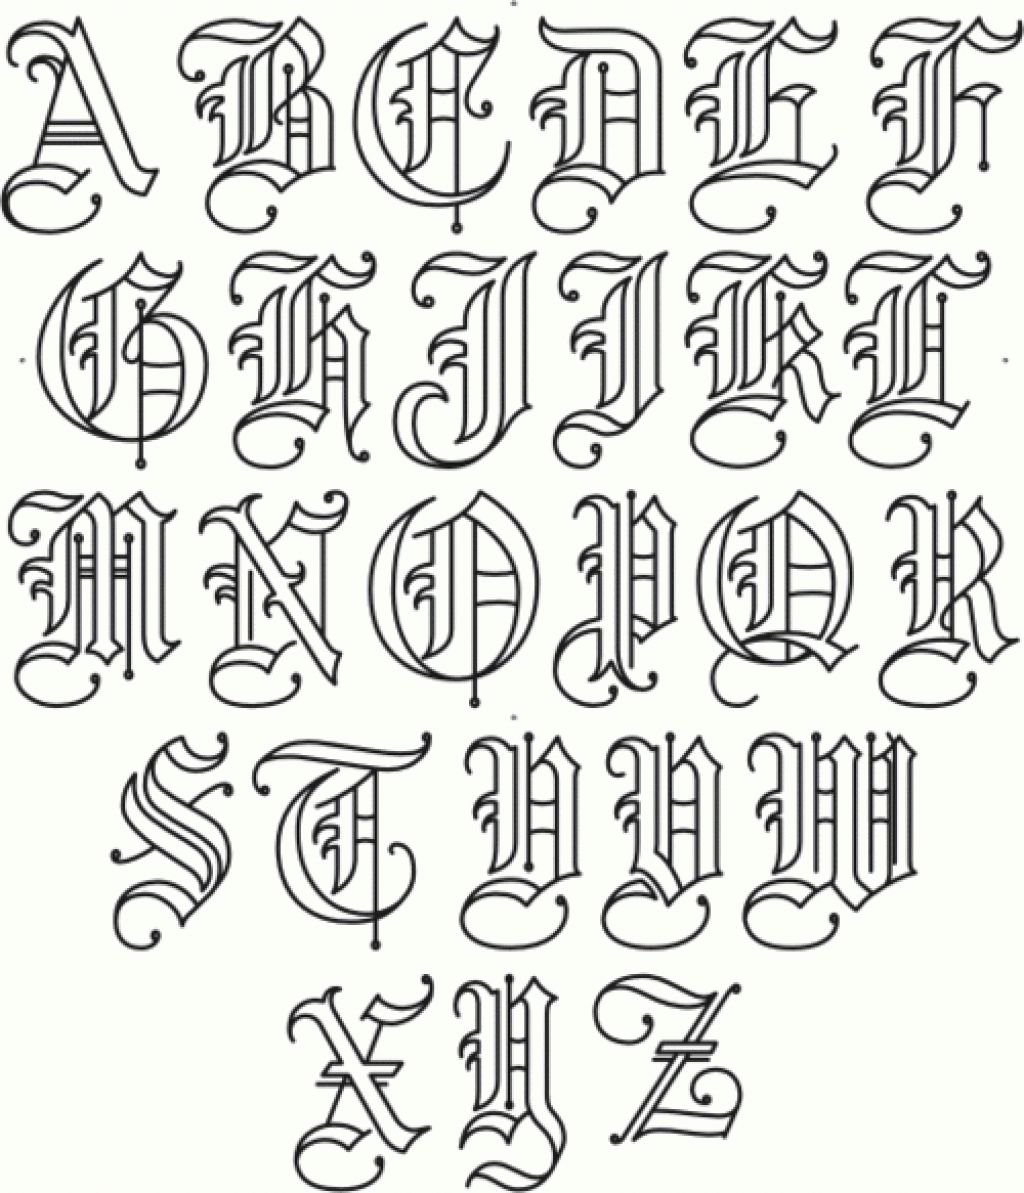 Gangsta Graffiti Alphabet